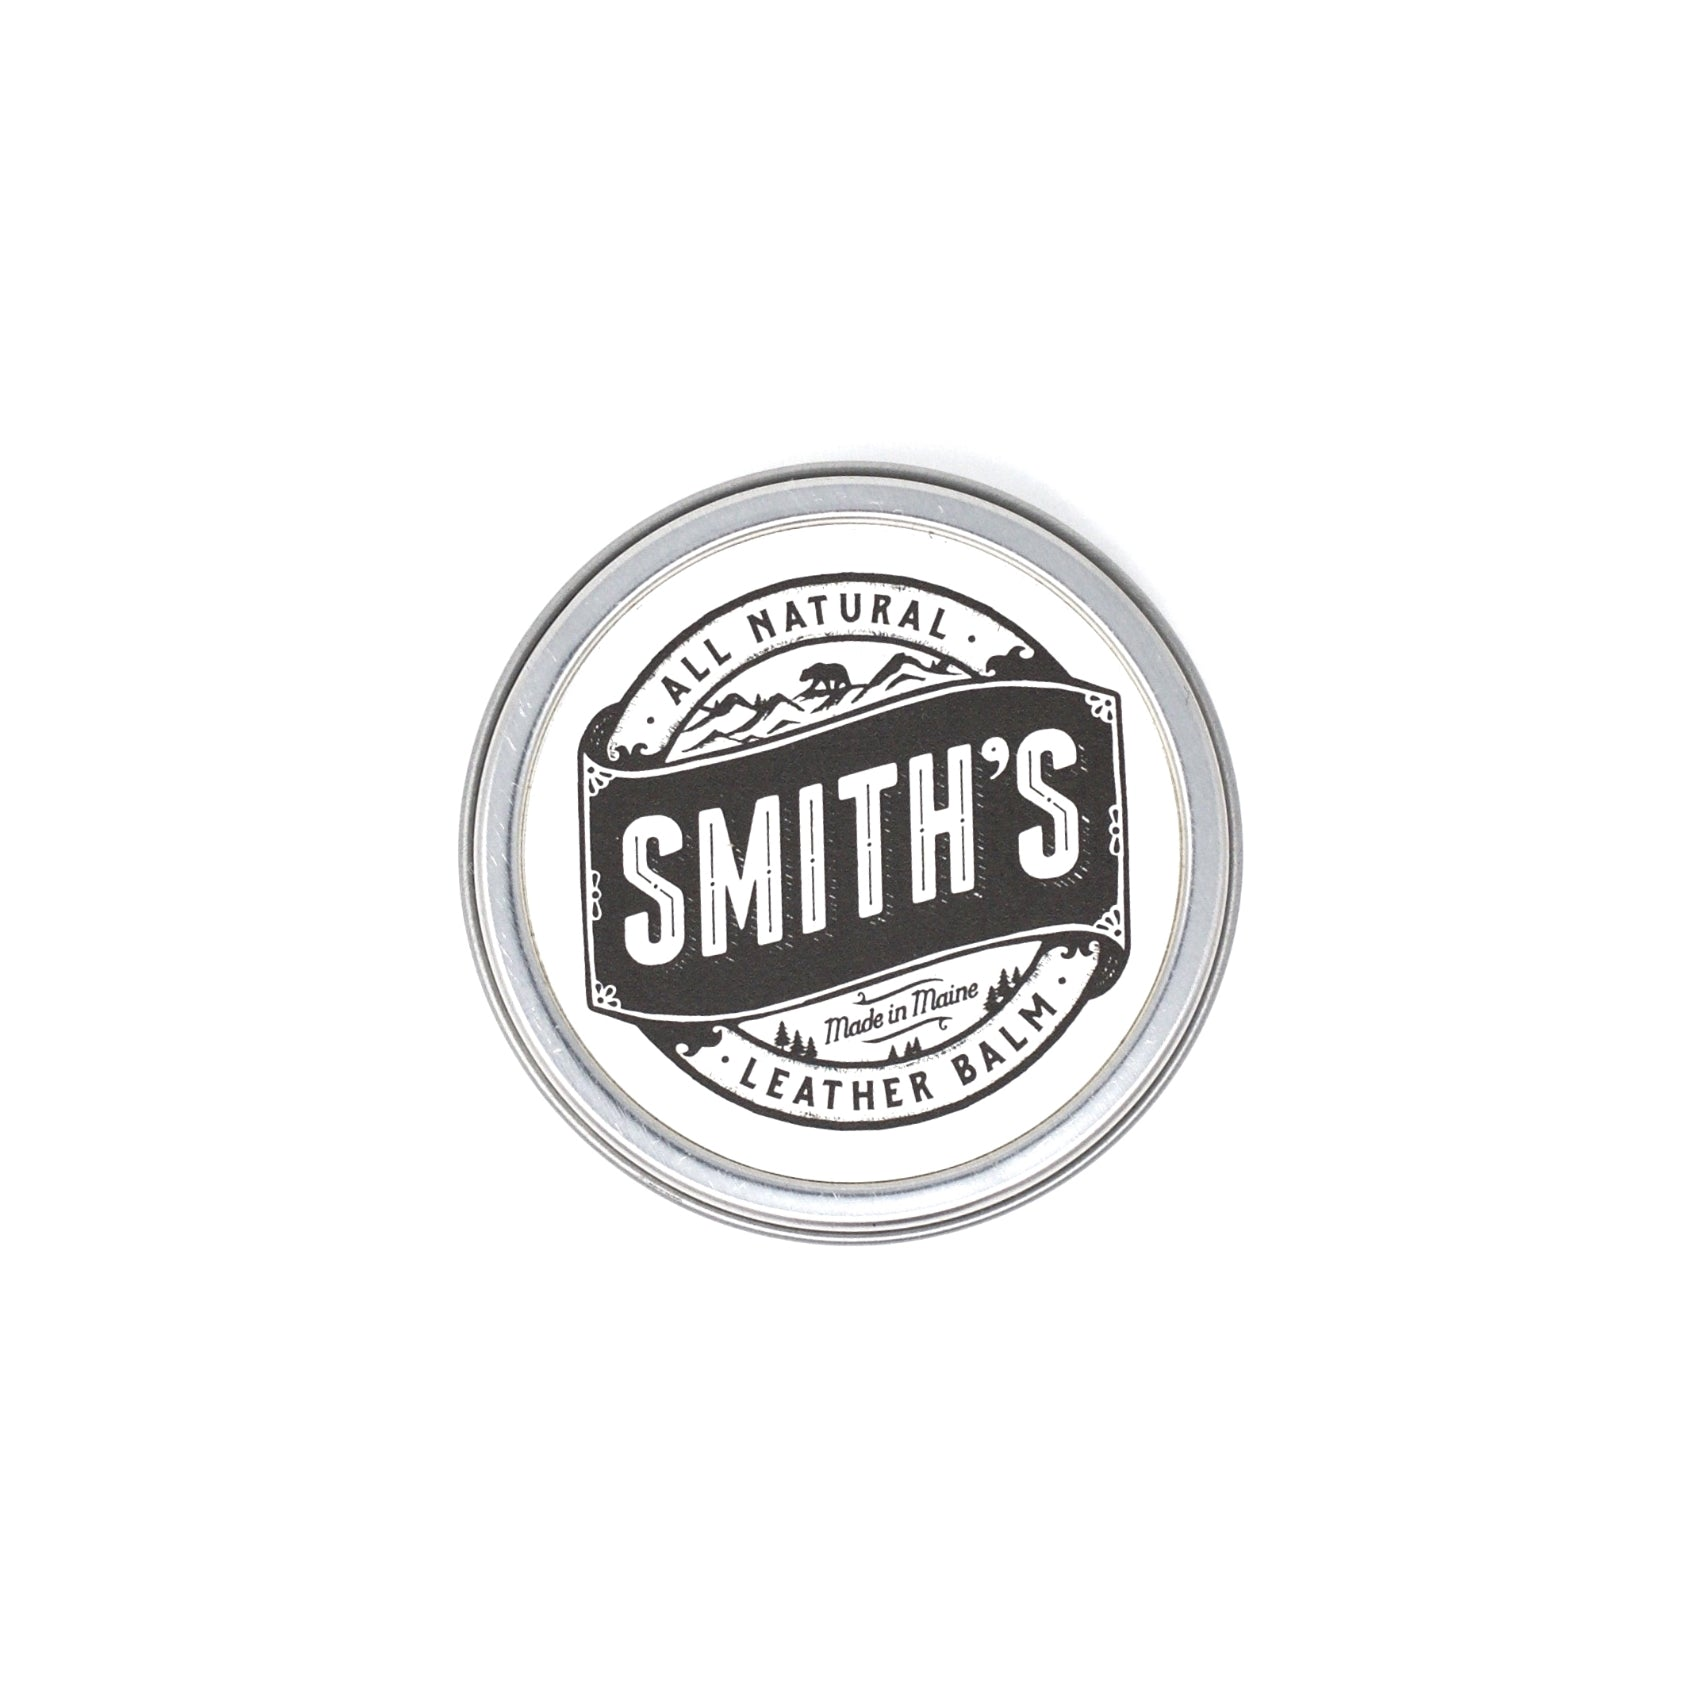 Smith's Leather Balm (1oz tin) - NOMADO Store